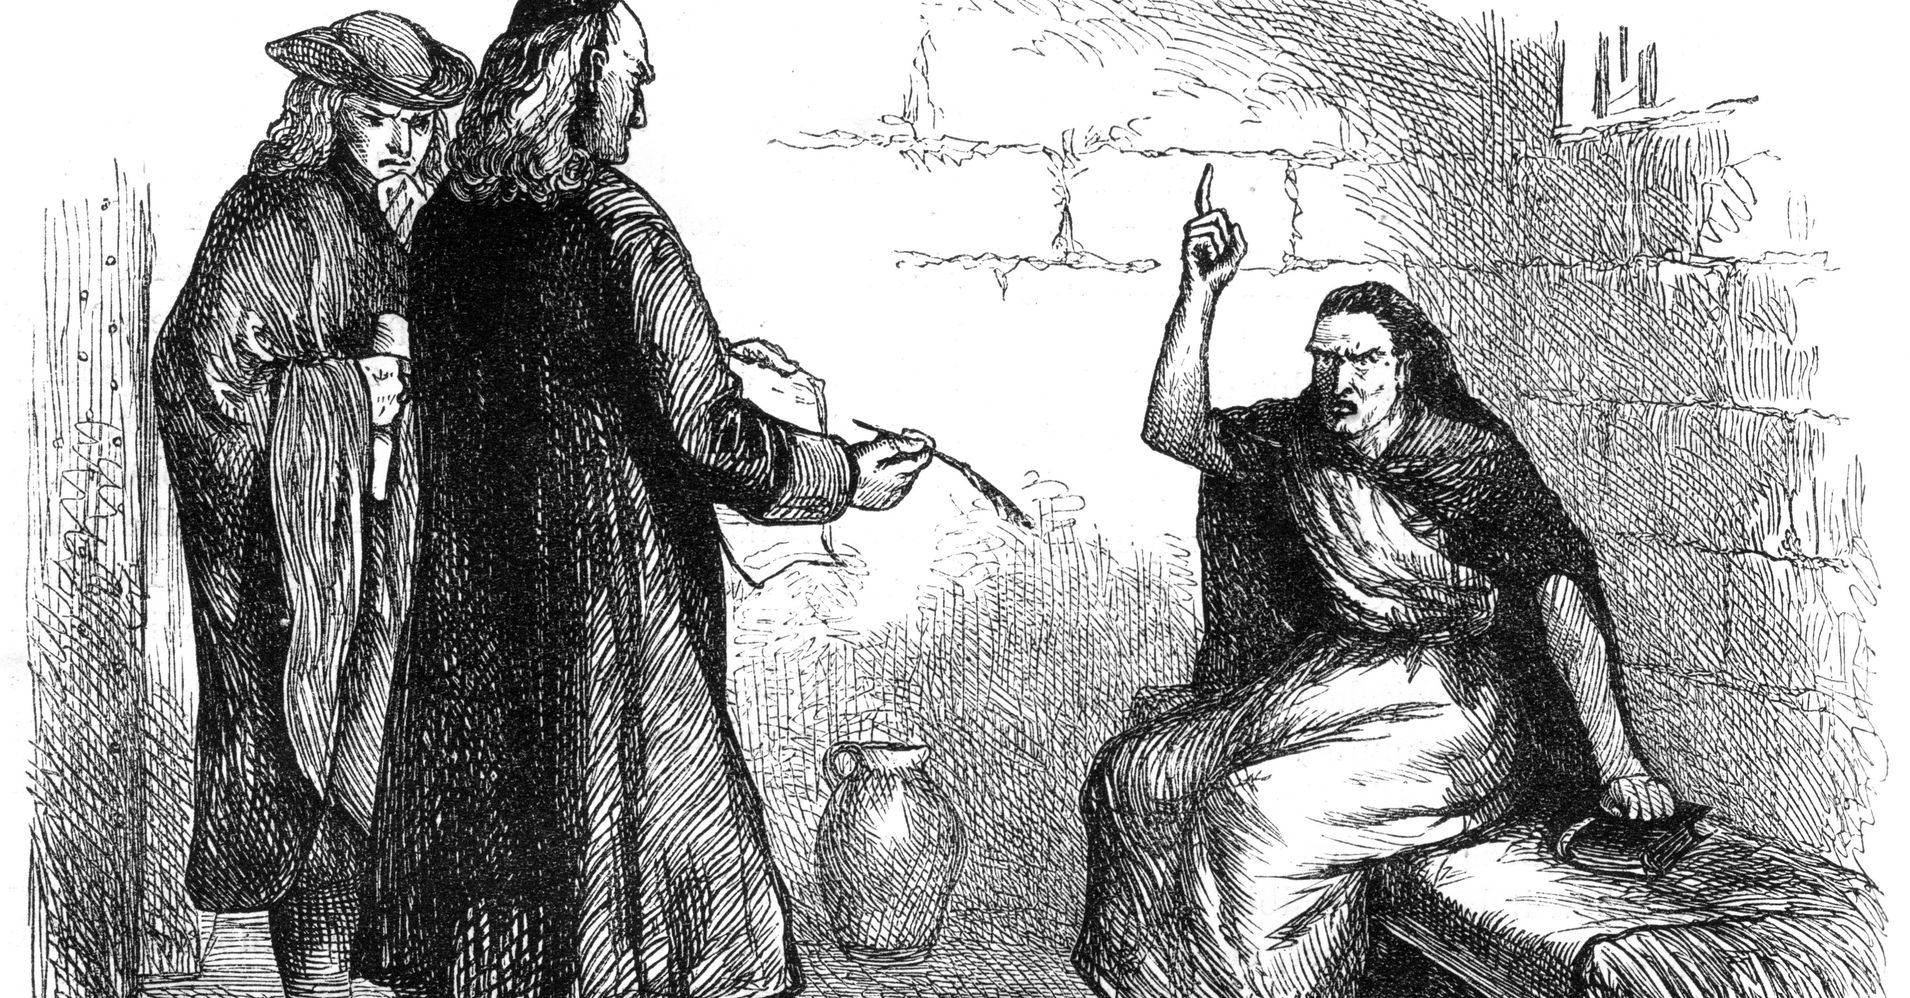 the details of the genesis of the infamous salem tragedy and trials in massachusetts in 1692